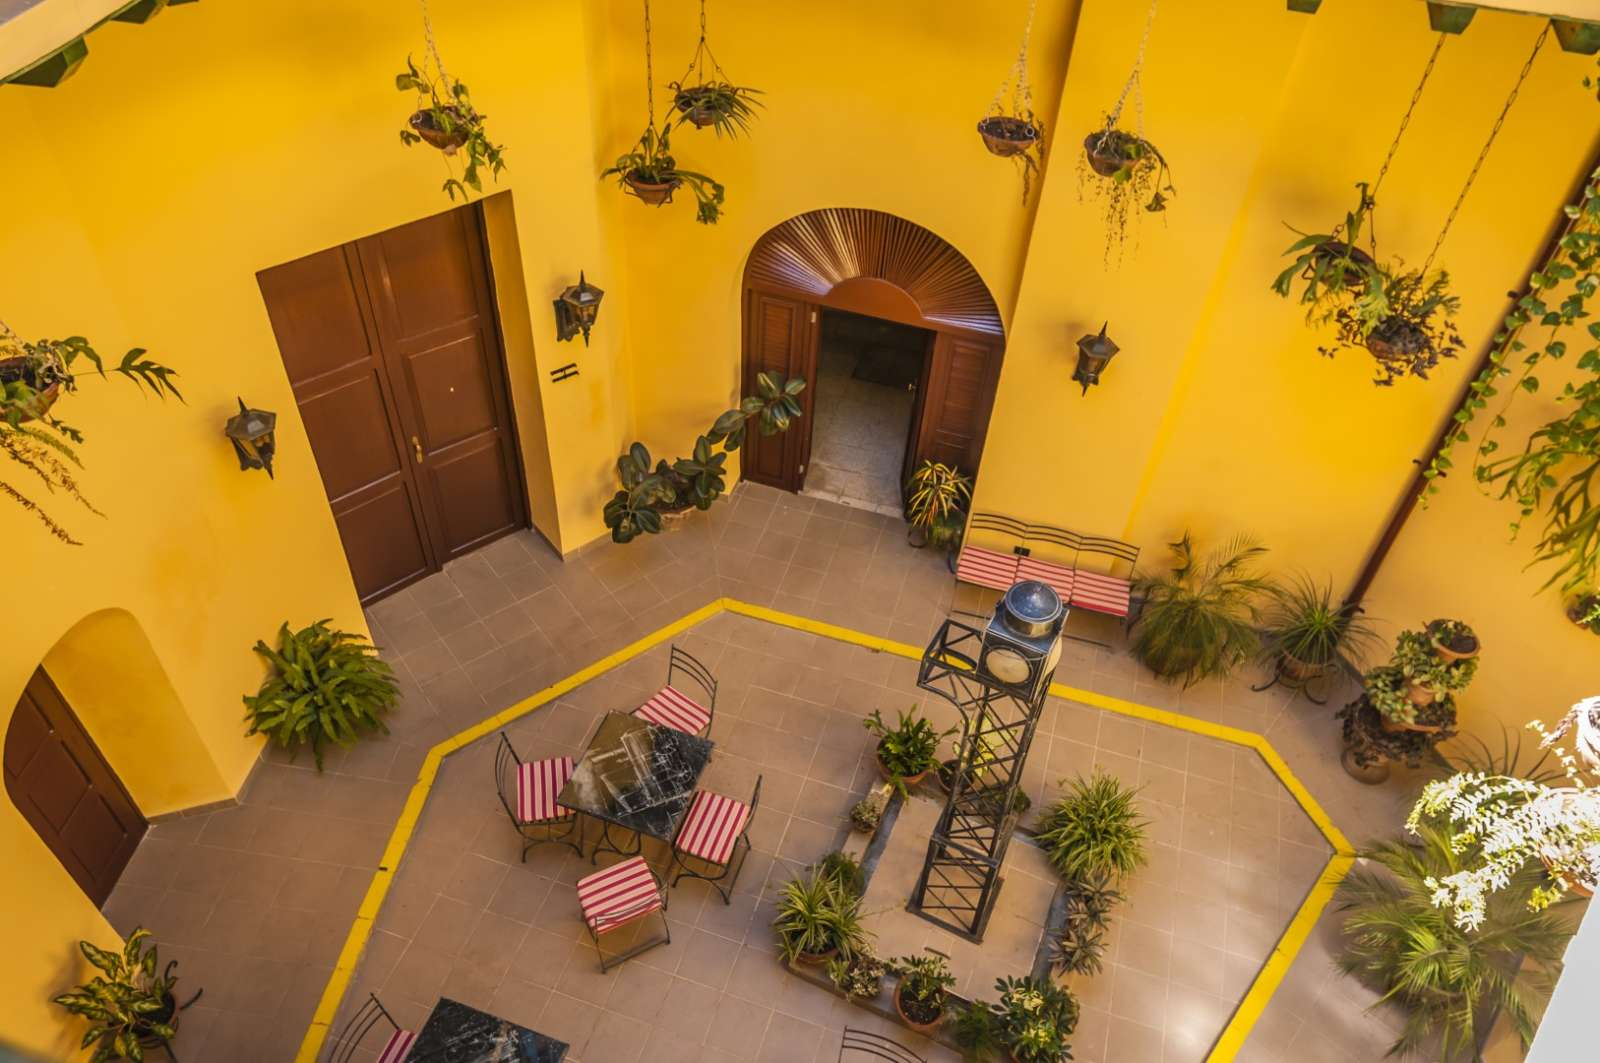 Bright yellow courtyard at Camino de Hierro